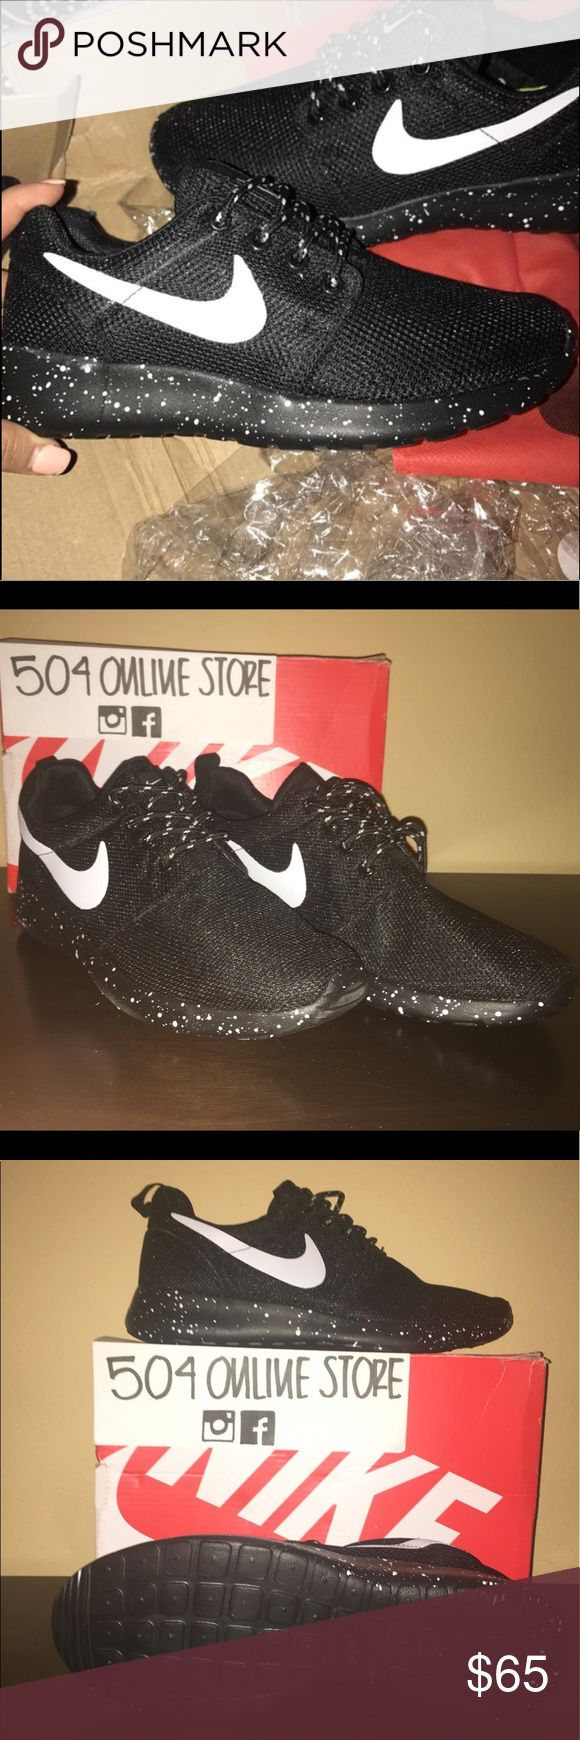 UA Nike Roshe 504 ONLINE STORE 🌎 www.504onlinestore.com  •All of our shoes run true on the size •UA Quality •All sizes available for women/men • Free Shipping in US (12-15 days)  💸 Get $10 when you subscribe to the website's newsletter and purchase with promo code: 504Discount$10 Nike Shoes Athletic Shoes